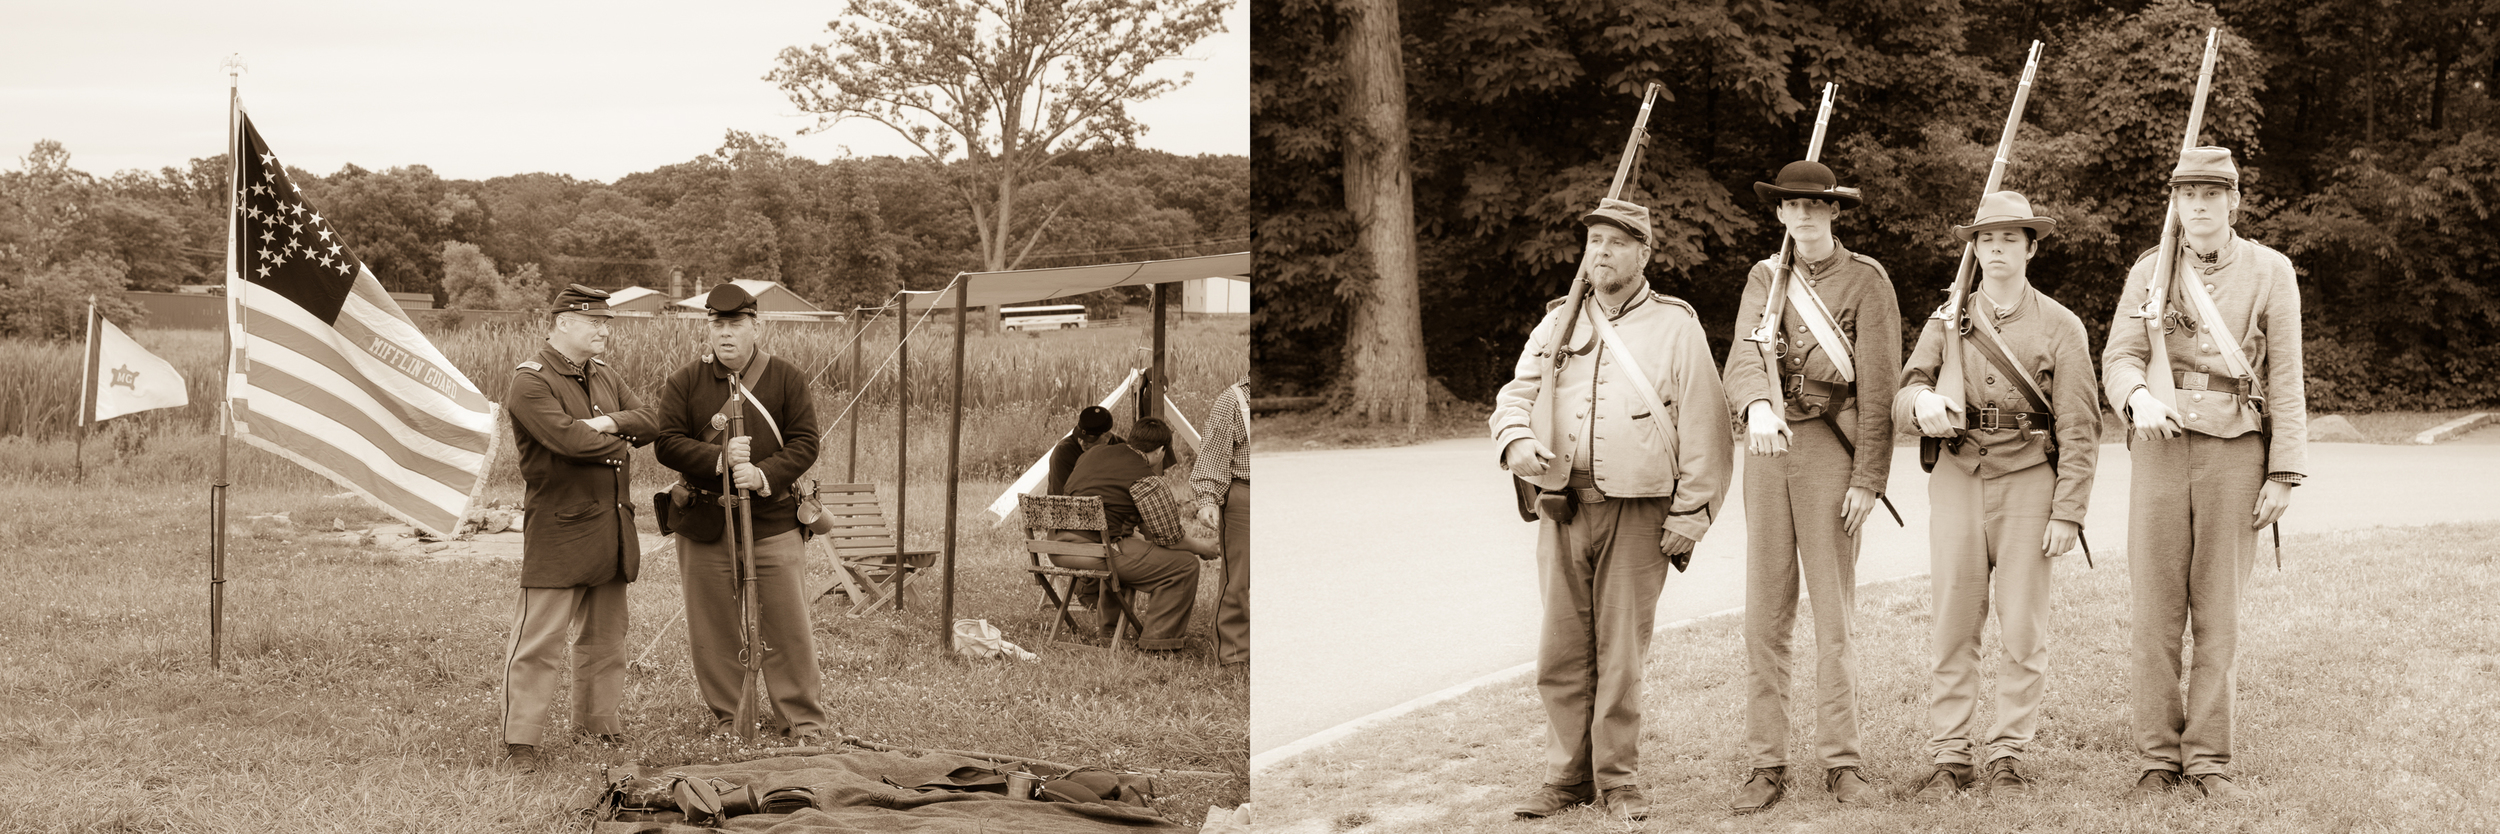 Reenactments were going on in all parts of the Battlefield areas